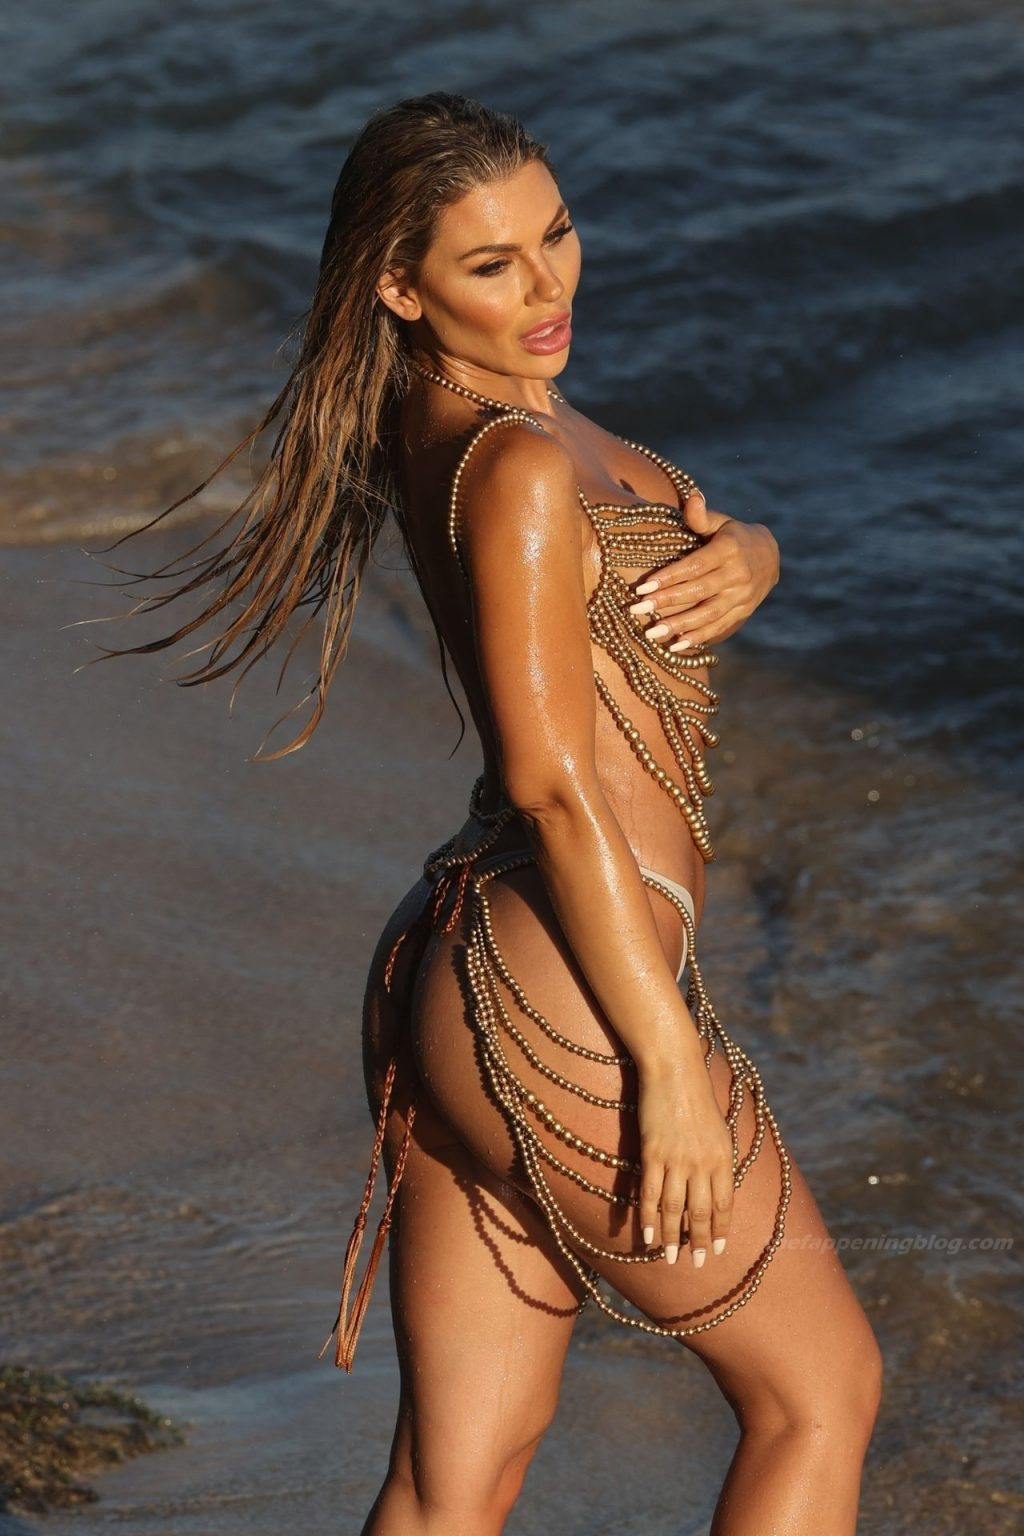 Kirralee Morris Goes Nude During a New Photoshoot in Sydney (126 Photos)